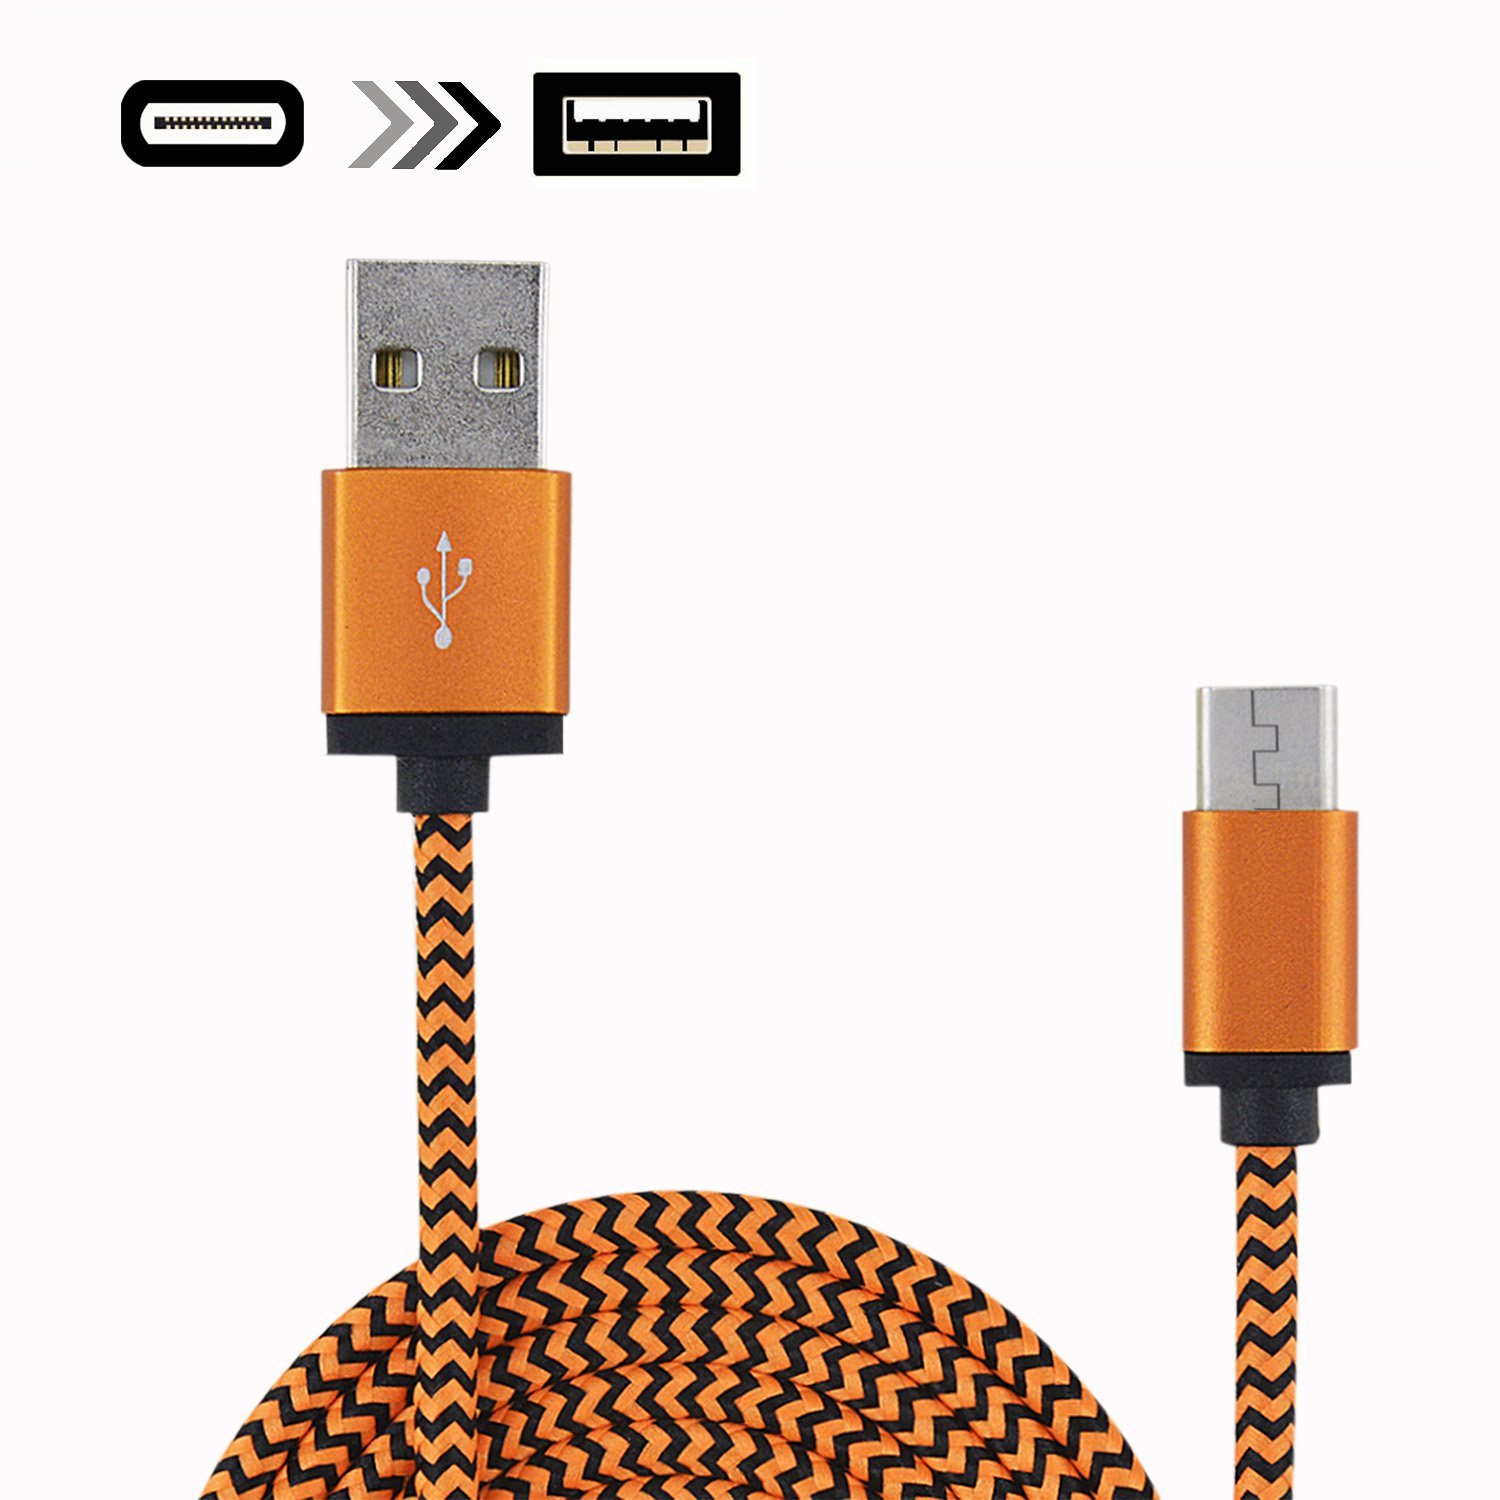 Rancco 2 Pcs 3.3ft Hi-speed Type C to USB A Cable, USB 3.1(USB C) to USB 2.0 Date/ Charger Cable for New Macbook, ChromeBook Pixel, Nokia N1 Tablet, Asus Zen AiO and Other Devices with Type C USB